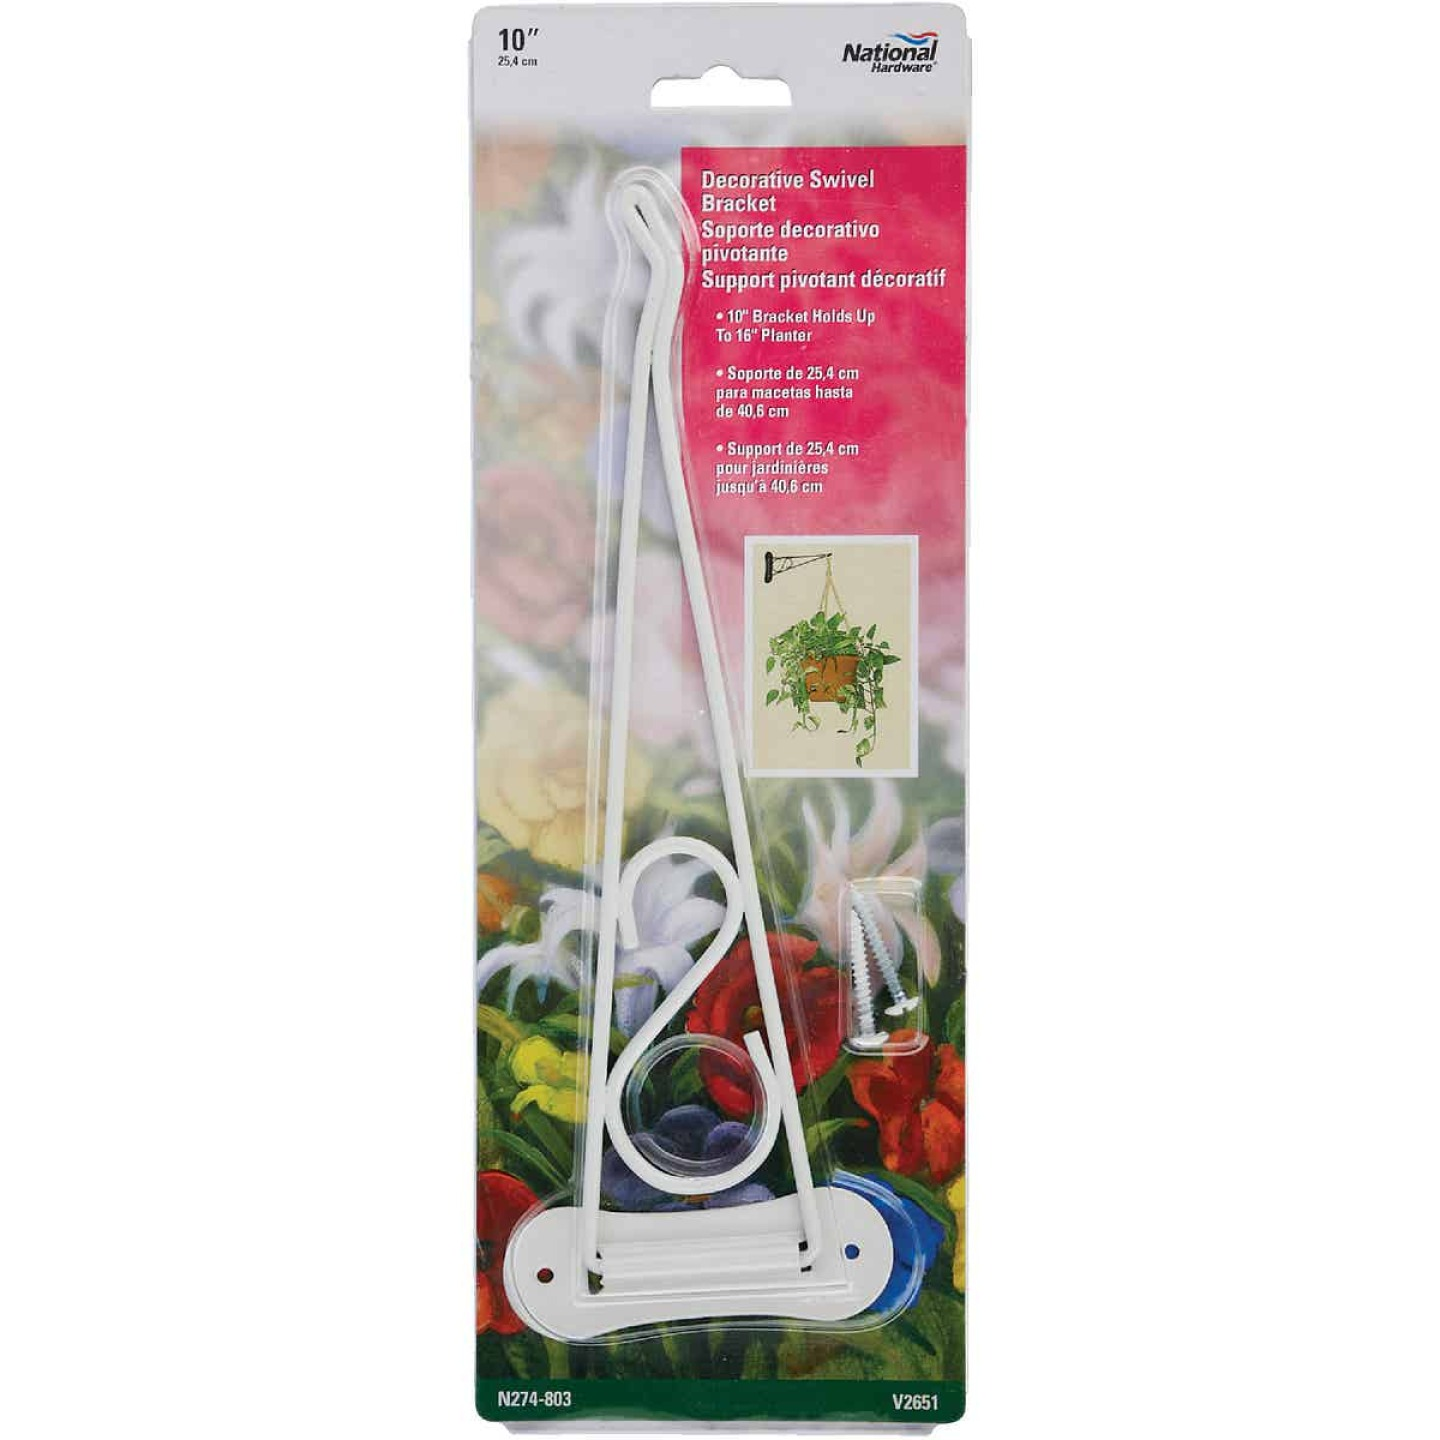 National 10 In. White Steel Decorative Swivel Hanging Plant Bracket Image 2